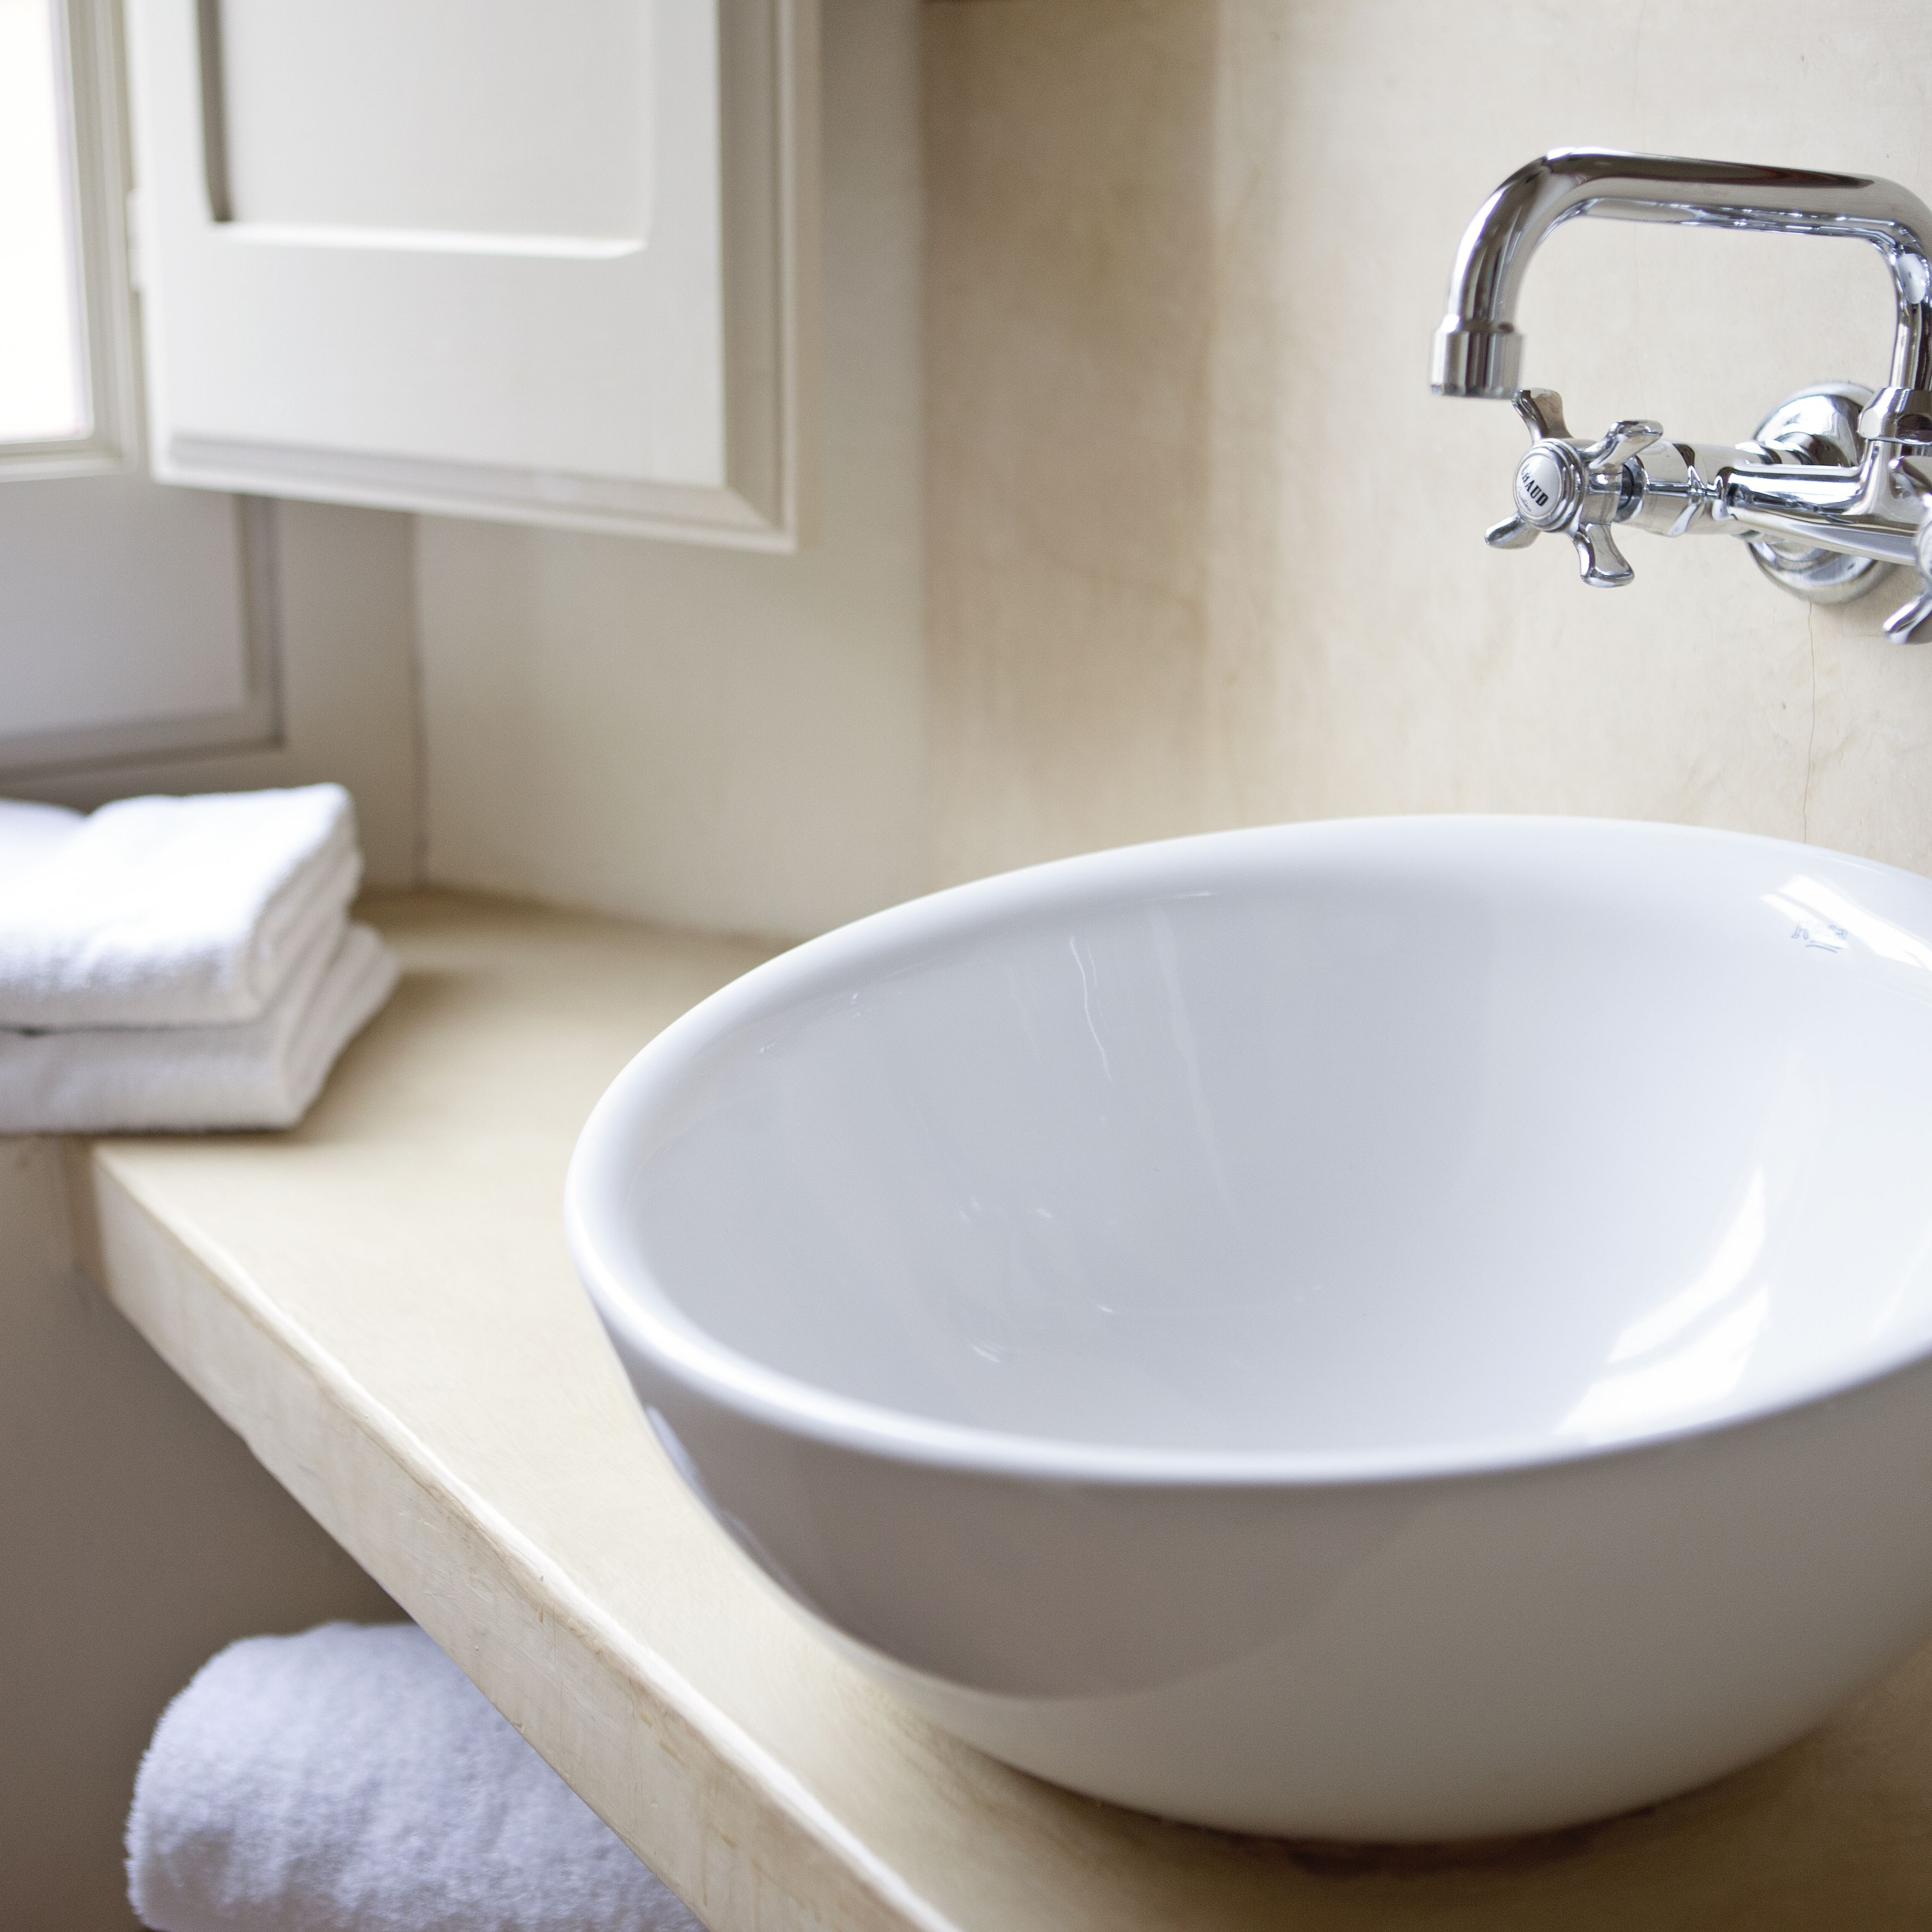 R Bathroom Glass Vessel Basin Sinks Bowl Waste Pop-up Drain With Taps